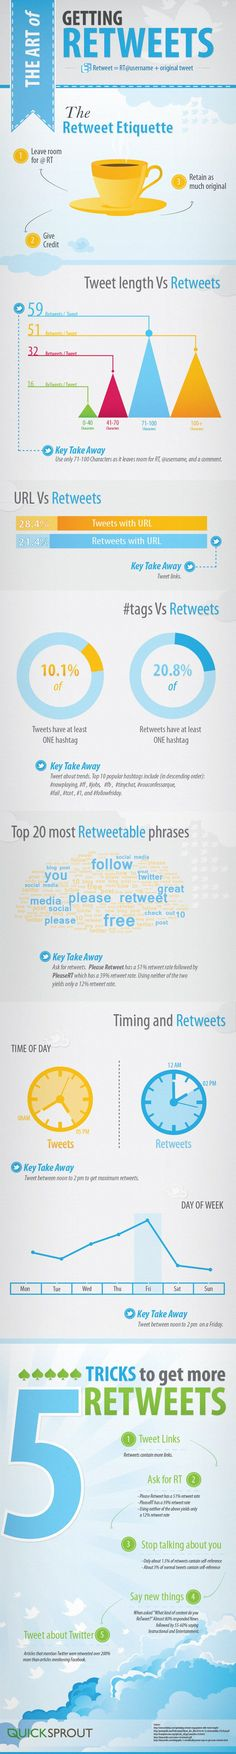 The art of getting ReTweets #infografia #infographic #socialmedia